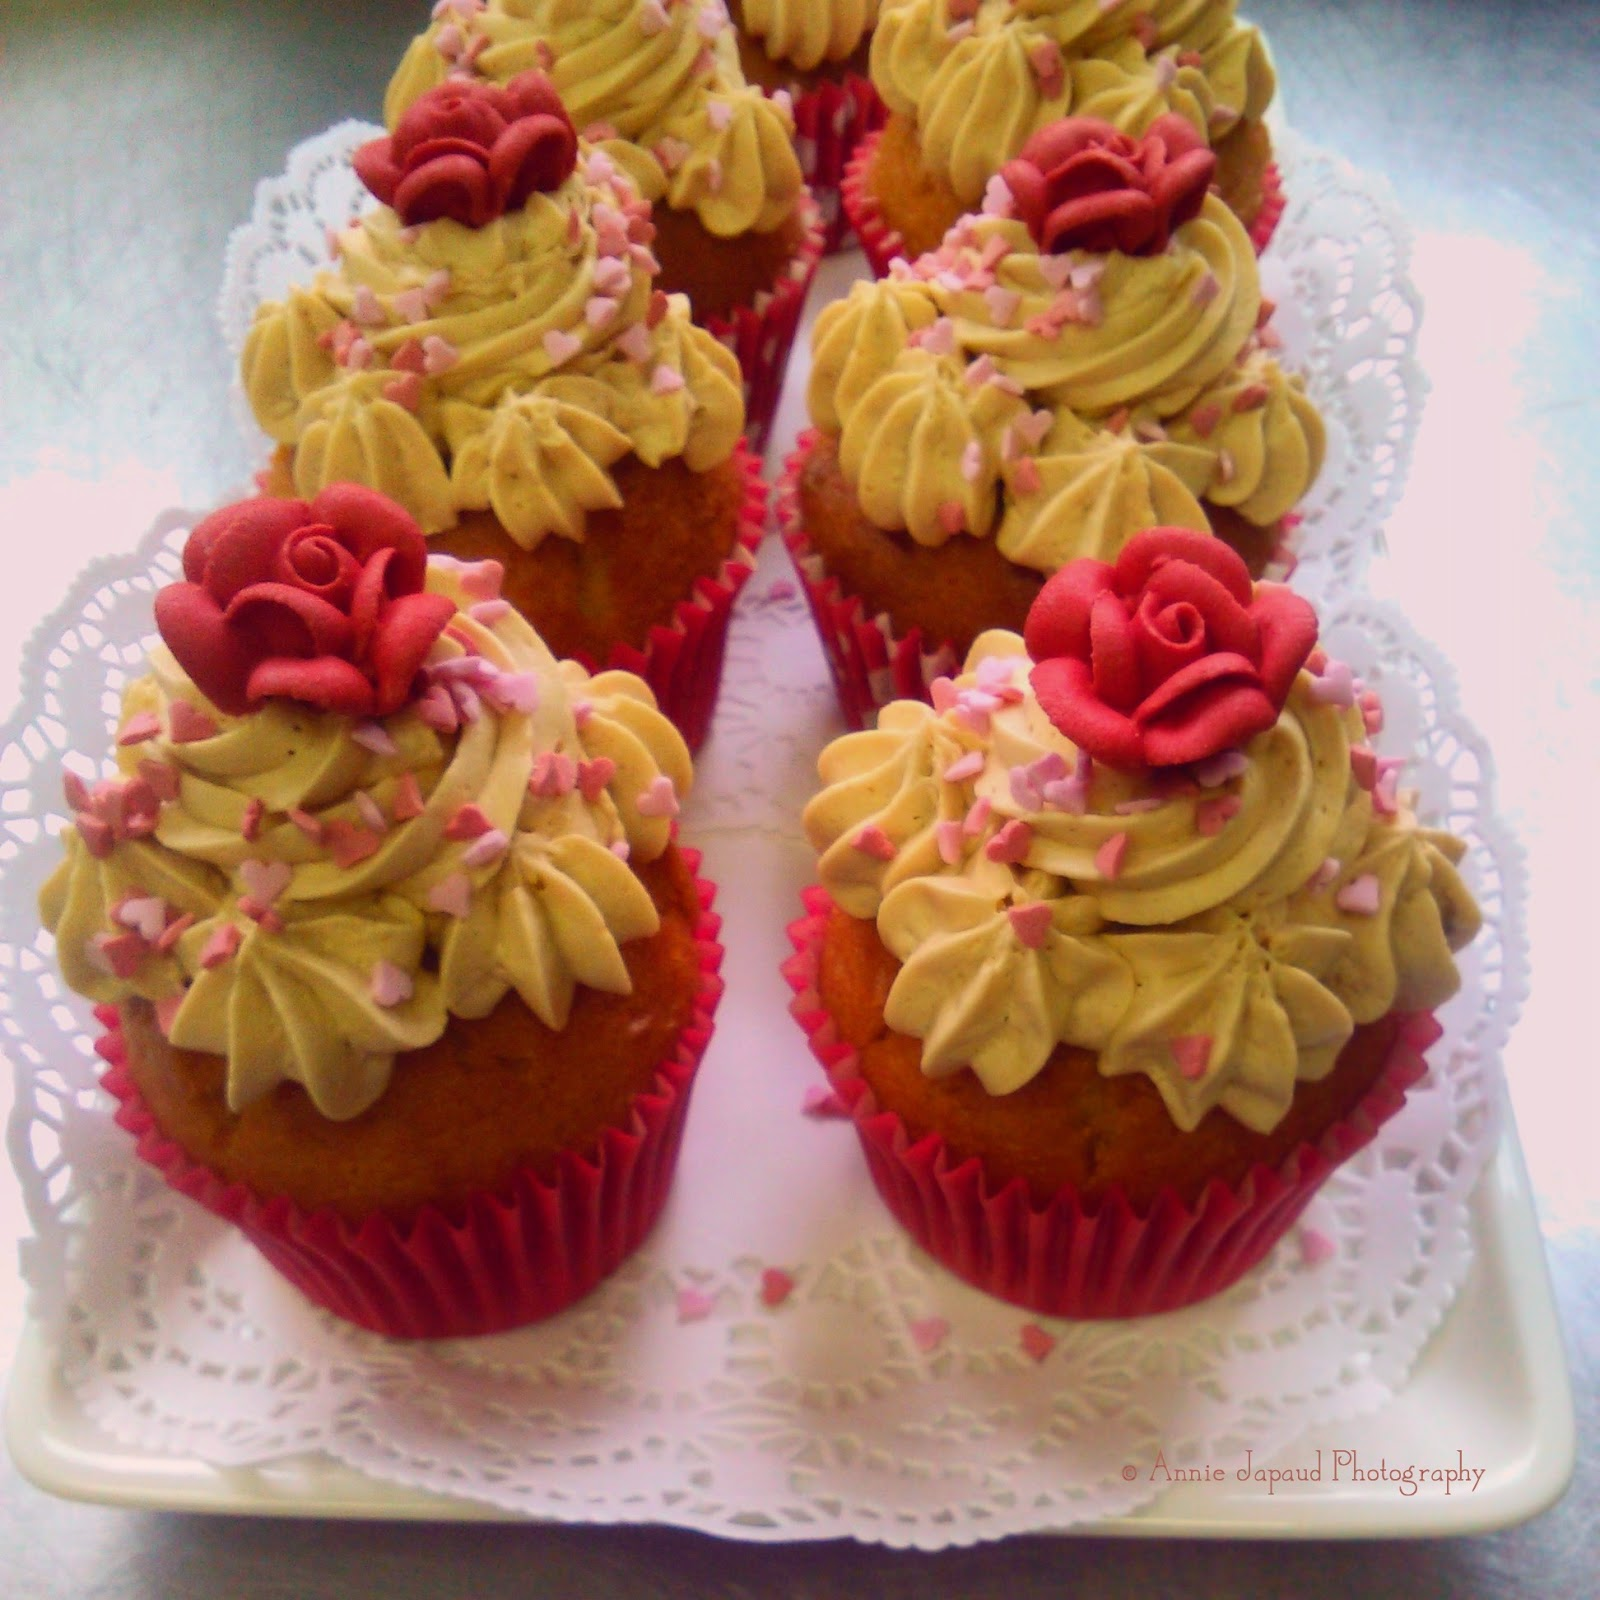 cupcakes with pink roses on top